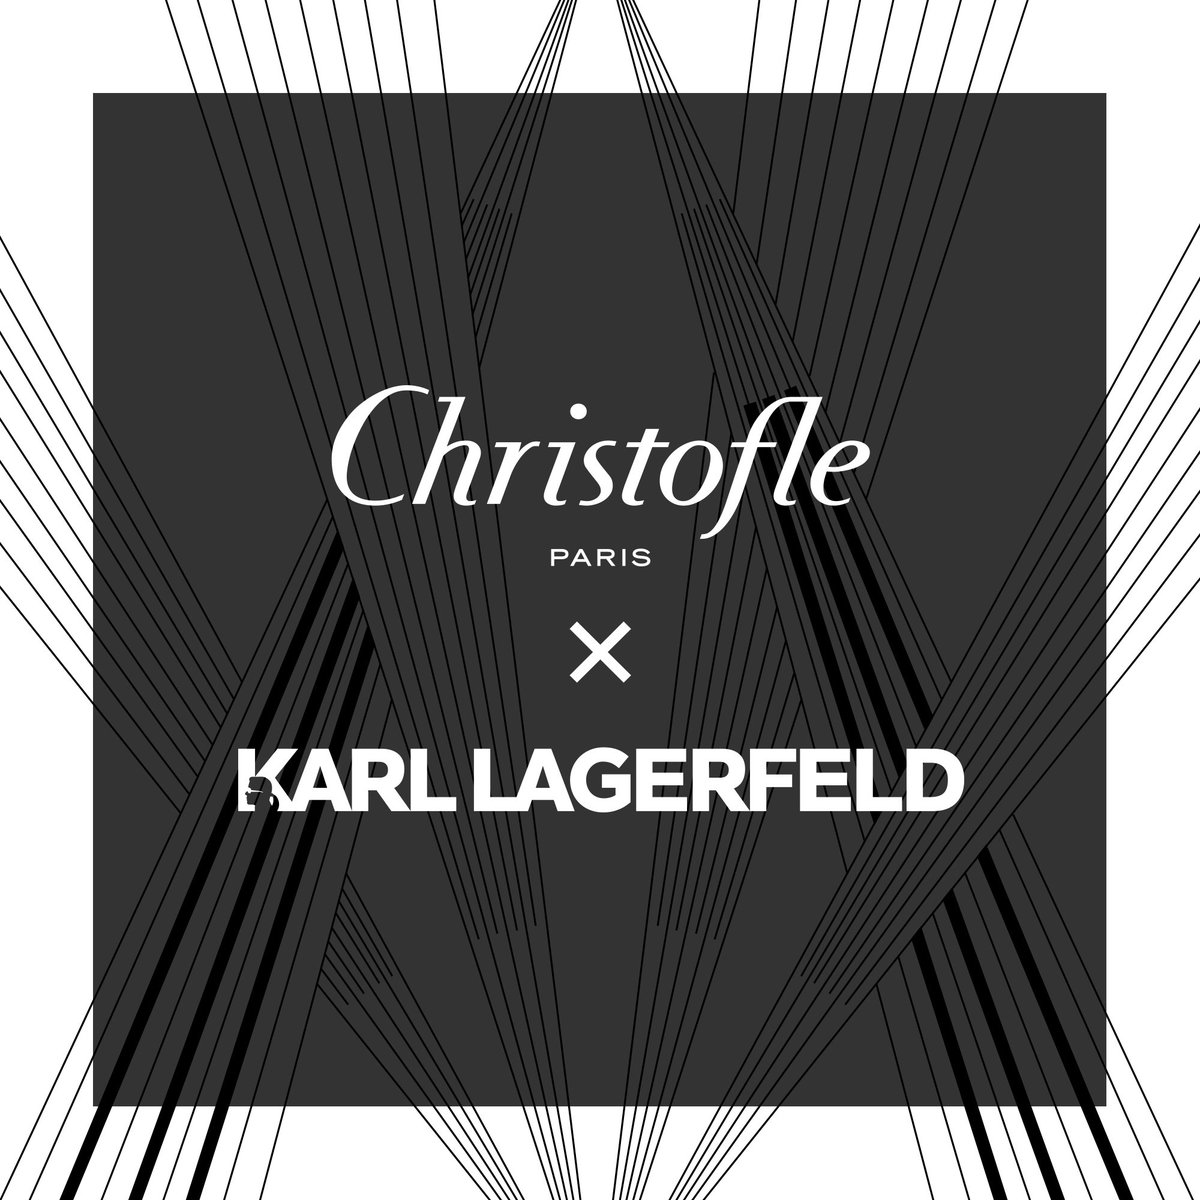 """Coming soon: a #collaboration with @KARLLAGERFELD for an exclusive edition of the """"MOOD"""" #flatware set and #decorative case. Inspired by #Art deco art and architecture, the #KARLLAGERFELD design features graphic lines engraved on the elliptical egg shape."""